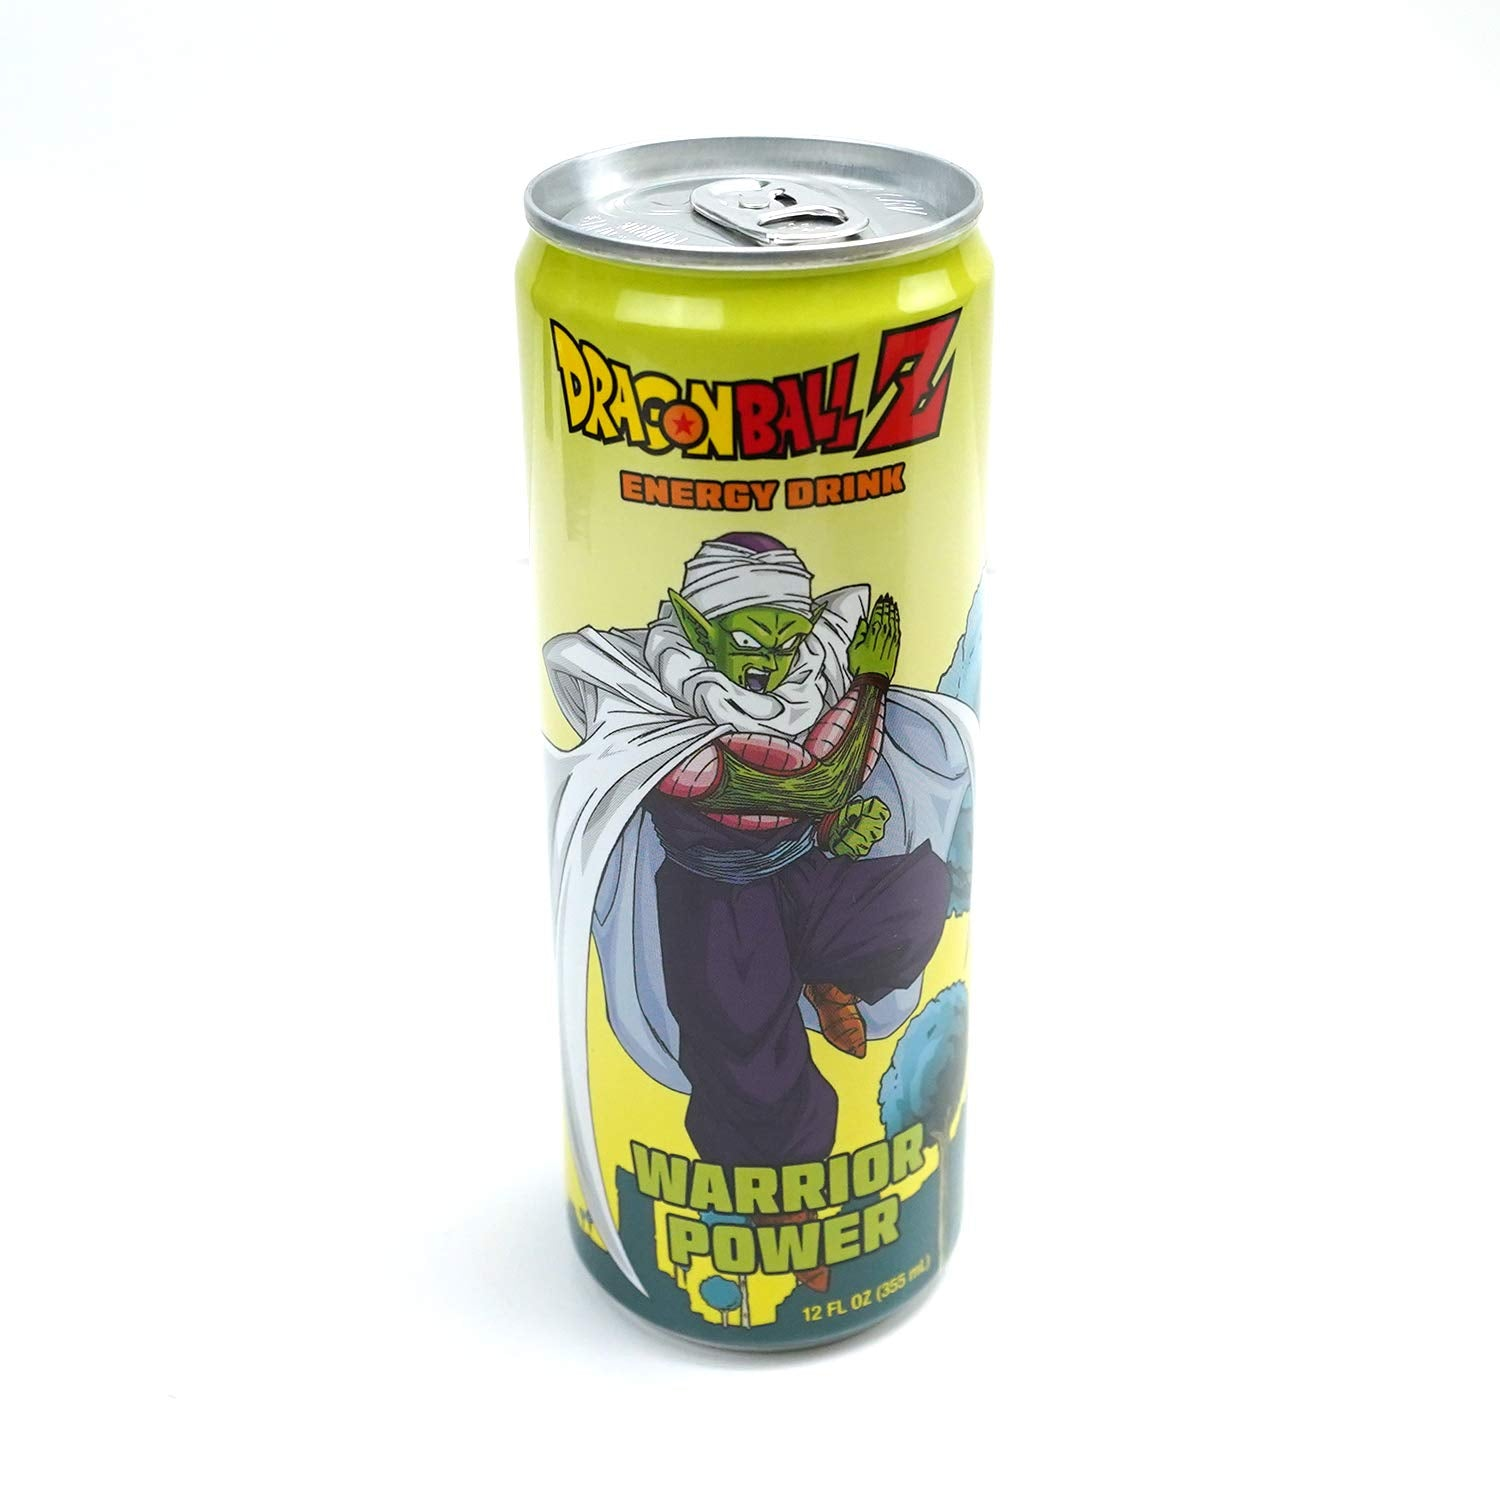 Dragonball Z Warrior Power and Power Boost Energy Drink 12 FL OZ (355mL) Can (2 Pack) with 2 GosuToys Stickers